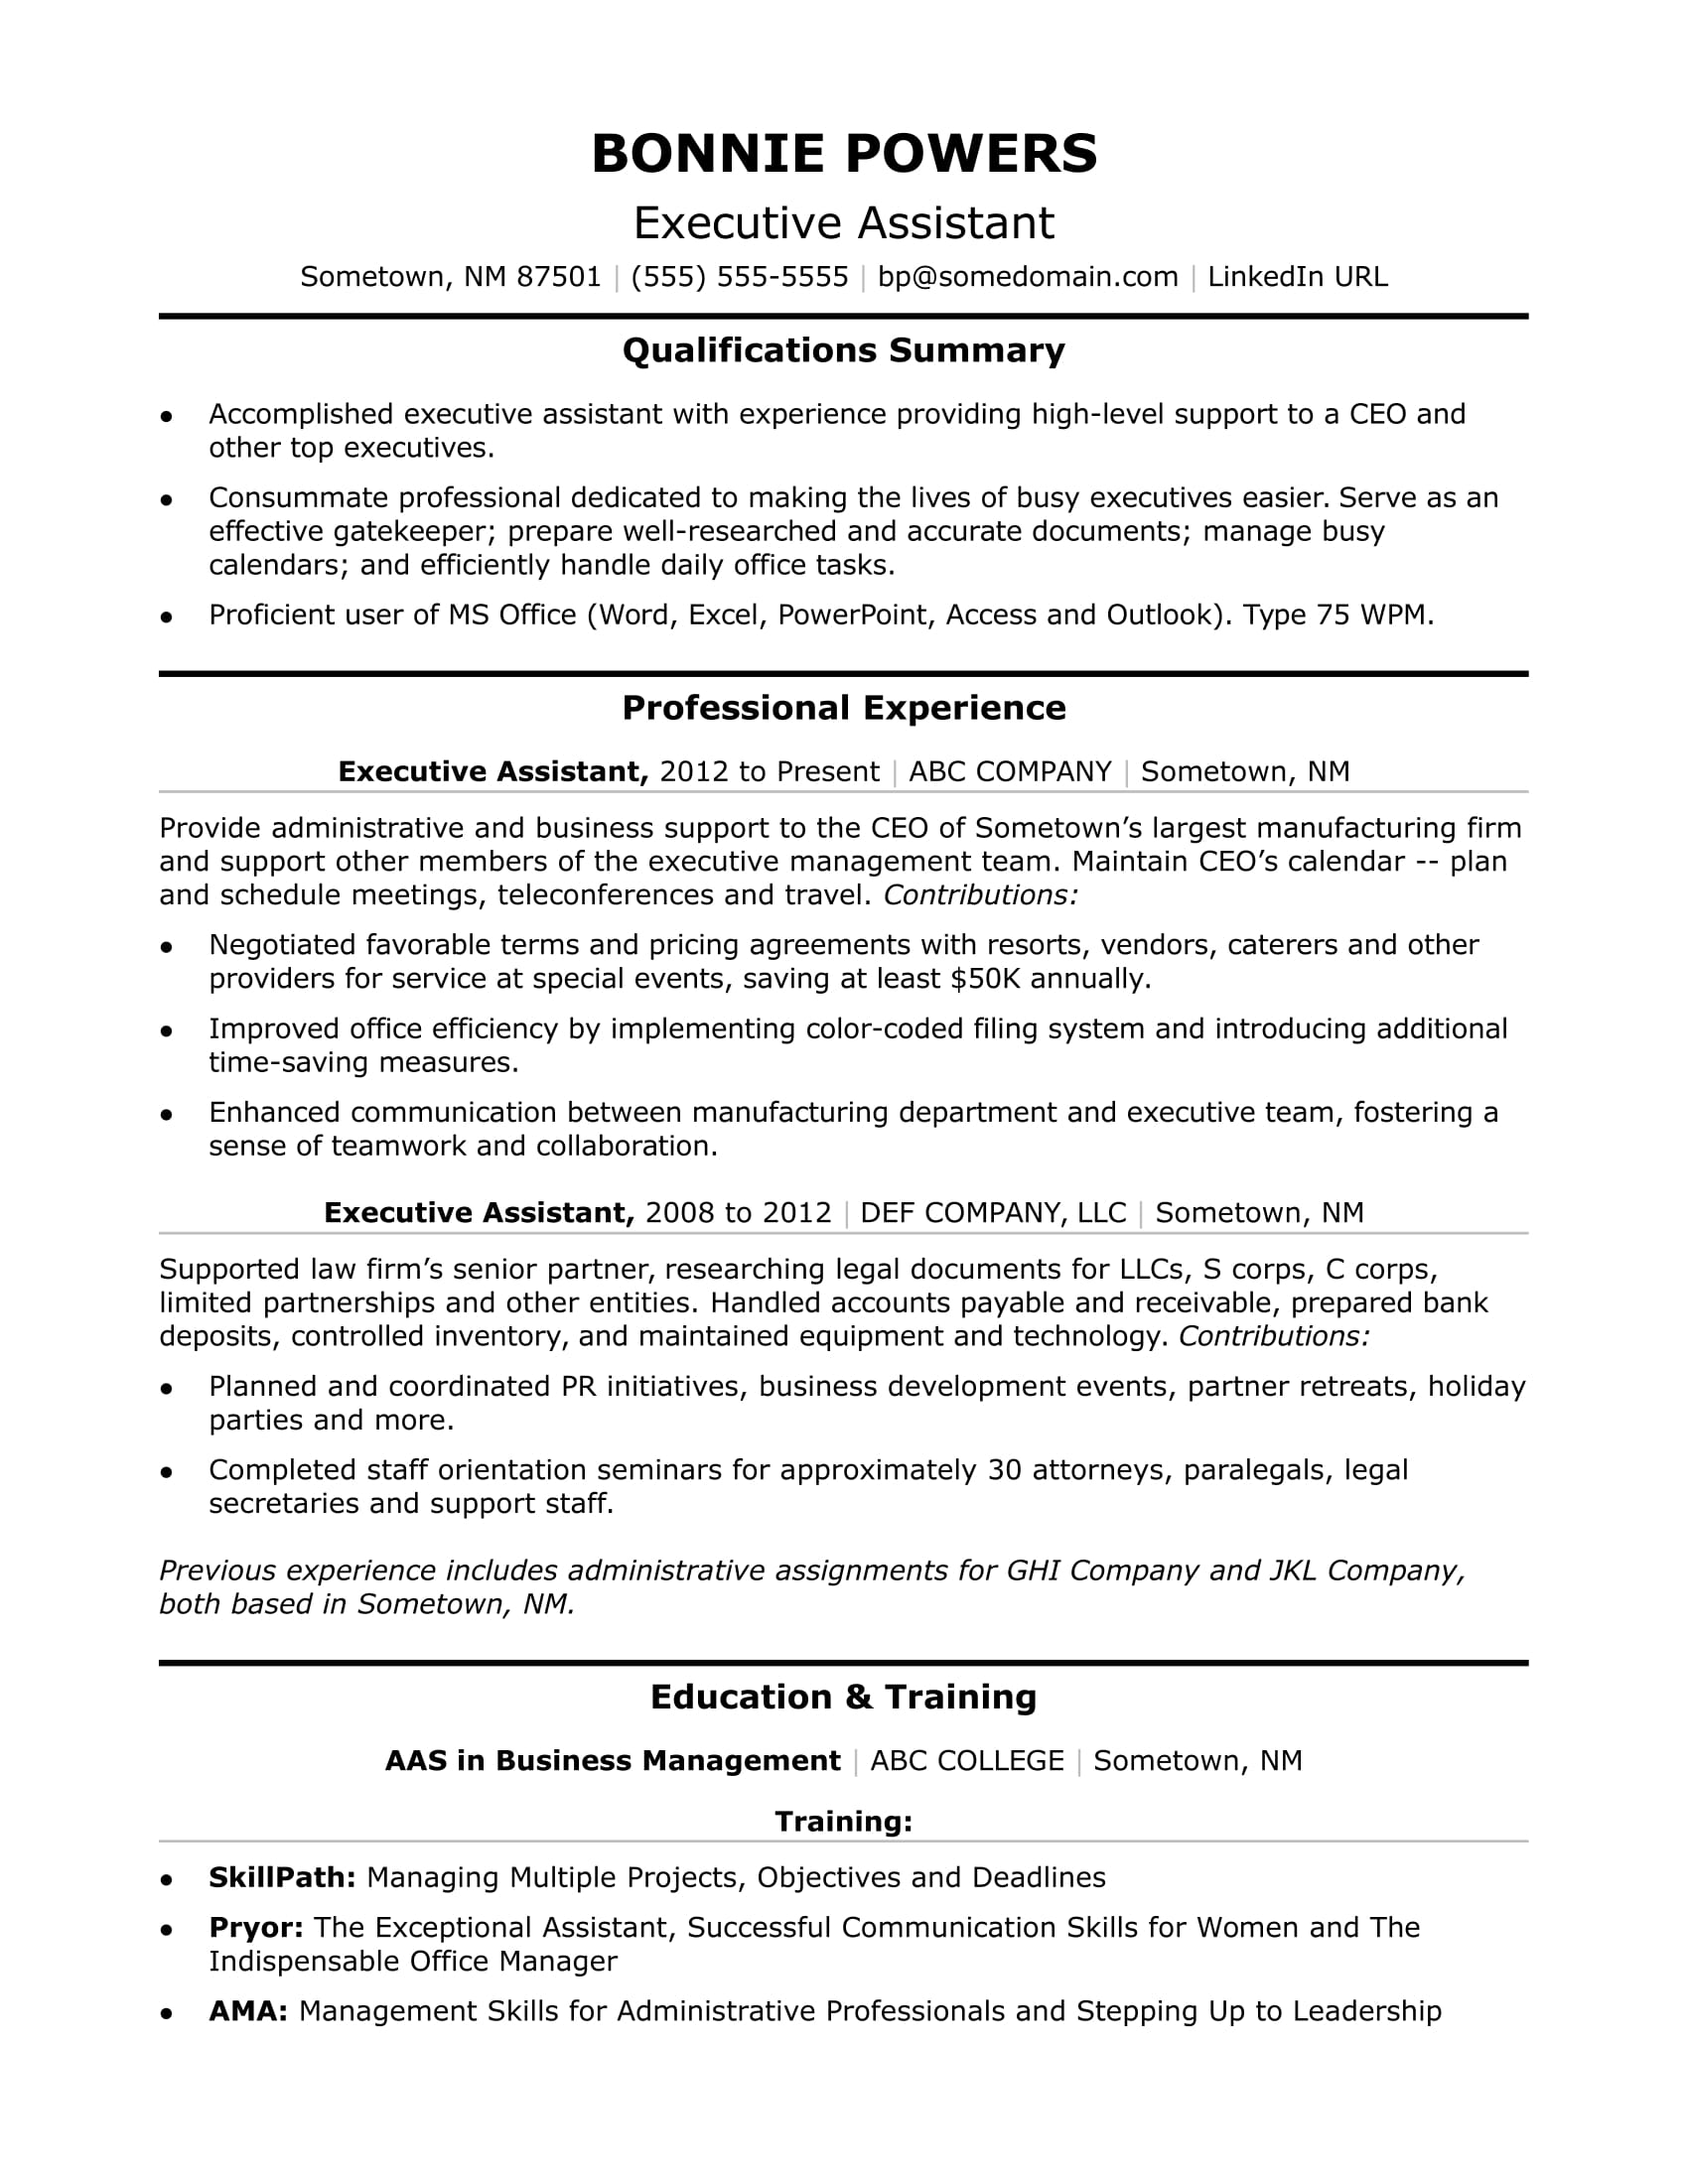 executive administrative assistant resume sample monster summary example template Resume Executive Summary Resume Example Template